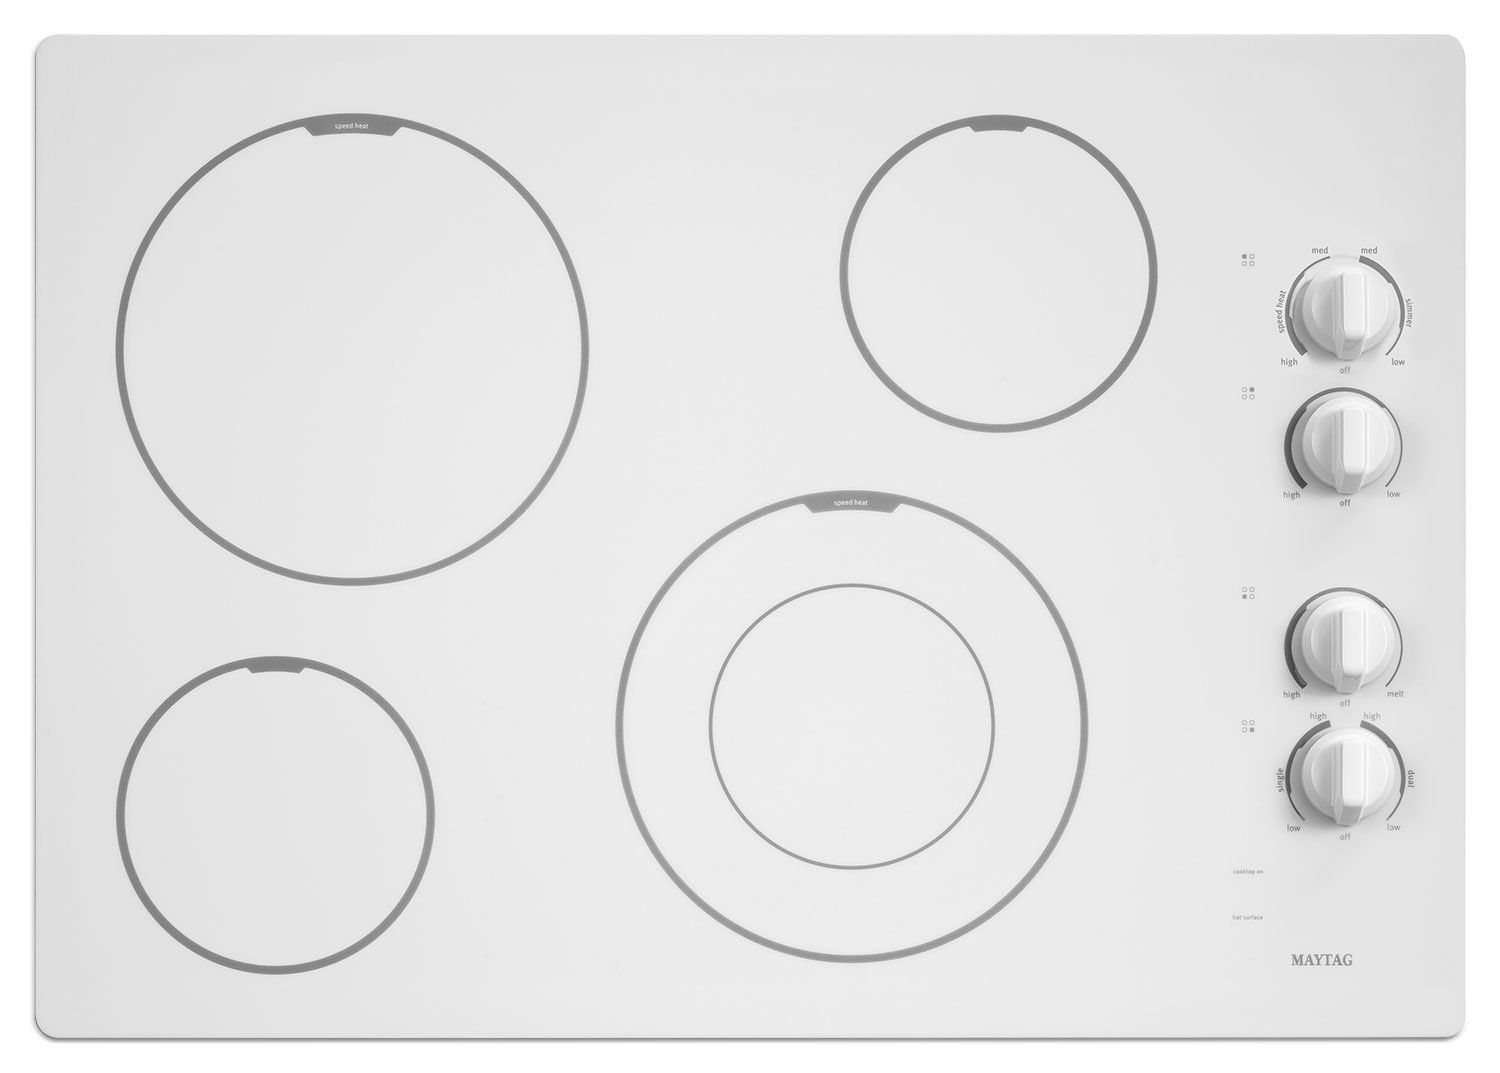 Cooking Products - Maytag Electric Cooktop MEC7430BW